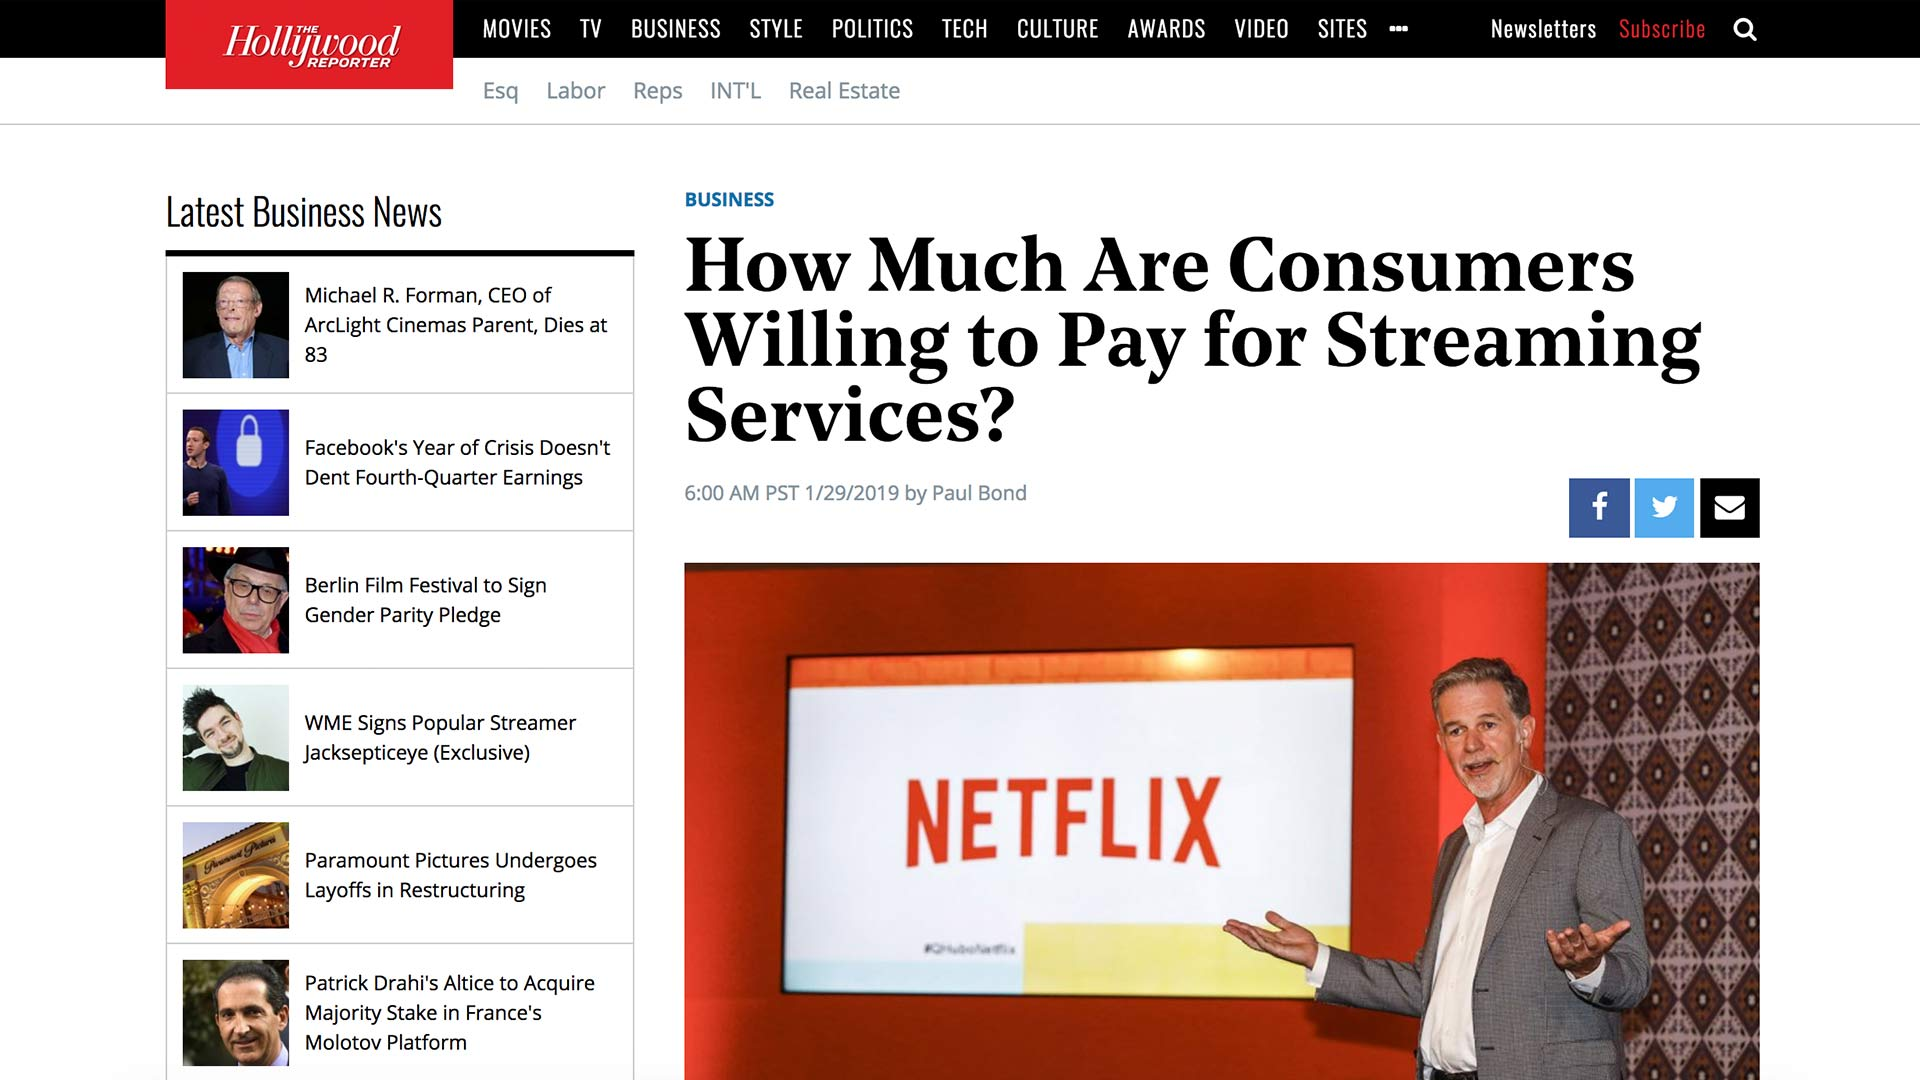 Fairness Rocks News How Much Are Consumers Willing to Pay for Streaming Services?